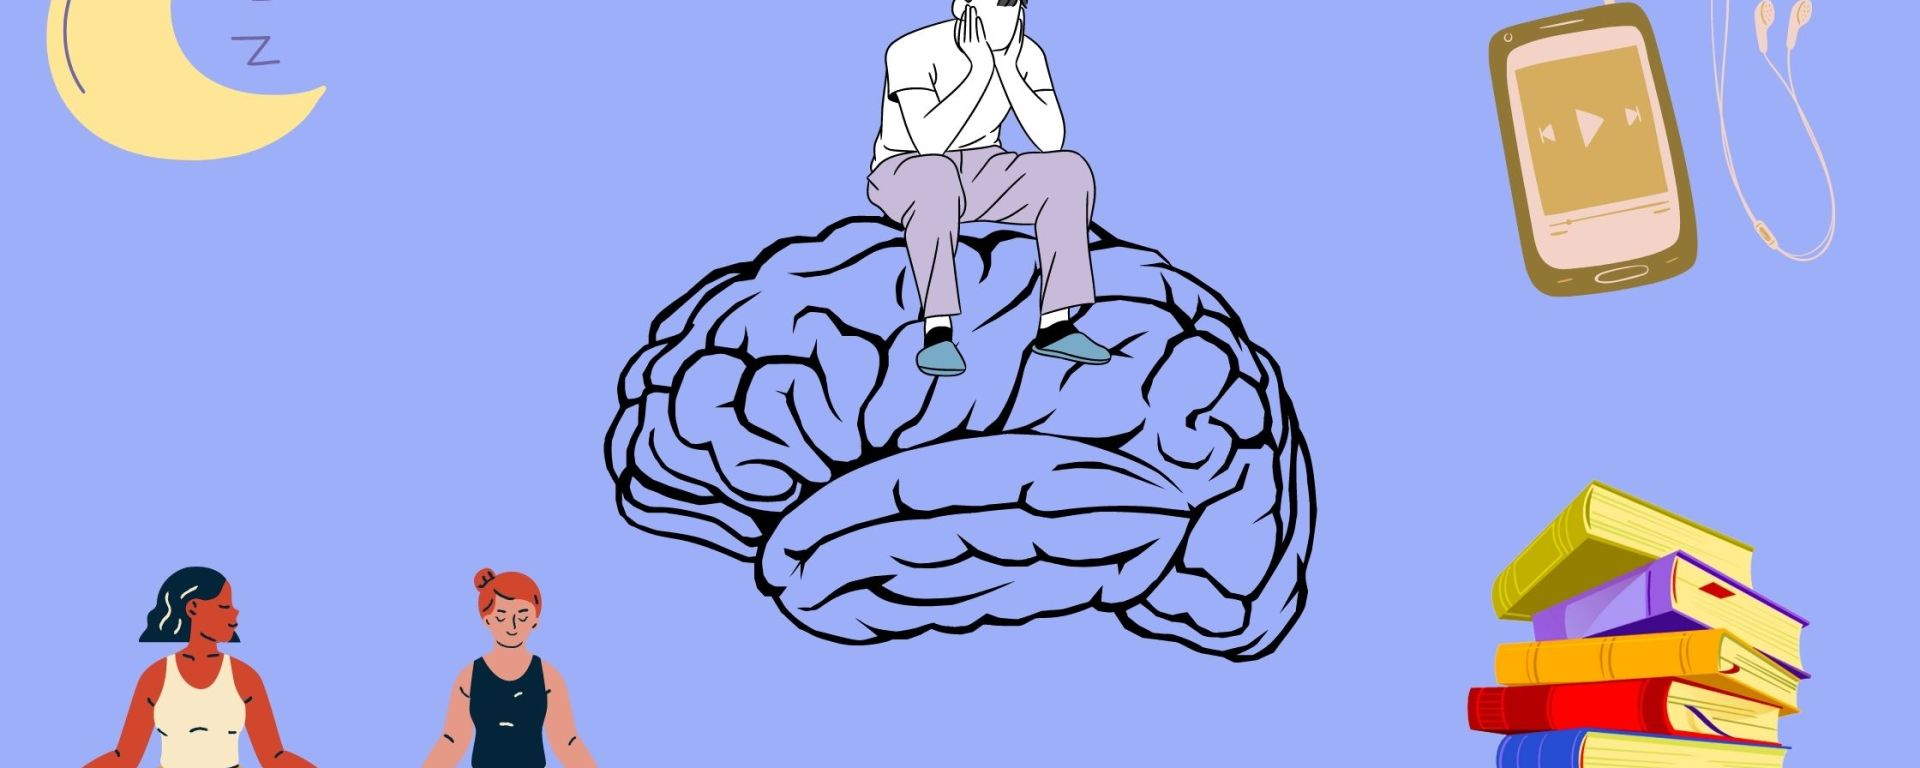 Solid blue background with a black outline of a brain in the center with a man sitting on the brain holding his head with his hands. On the top left corner is a crescent-shaped moon with z's, the bottom left corner has two women practicing yoga, the top right has an iPod with music playing, and the bottom right corner has a large stack of books.